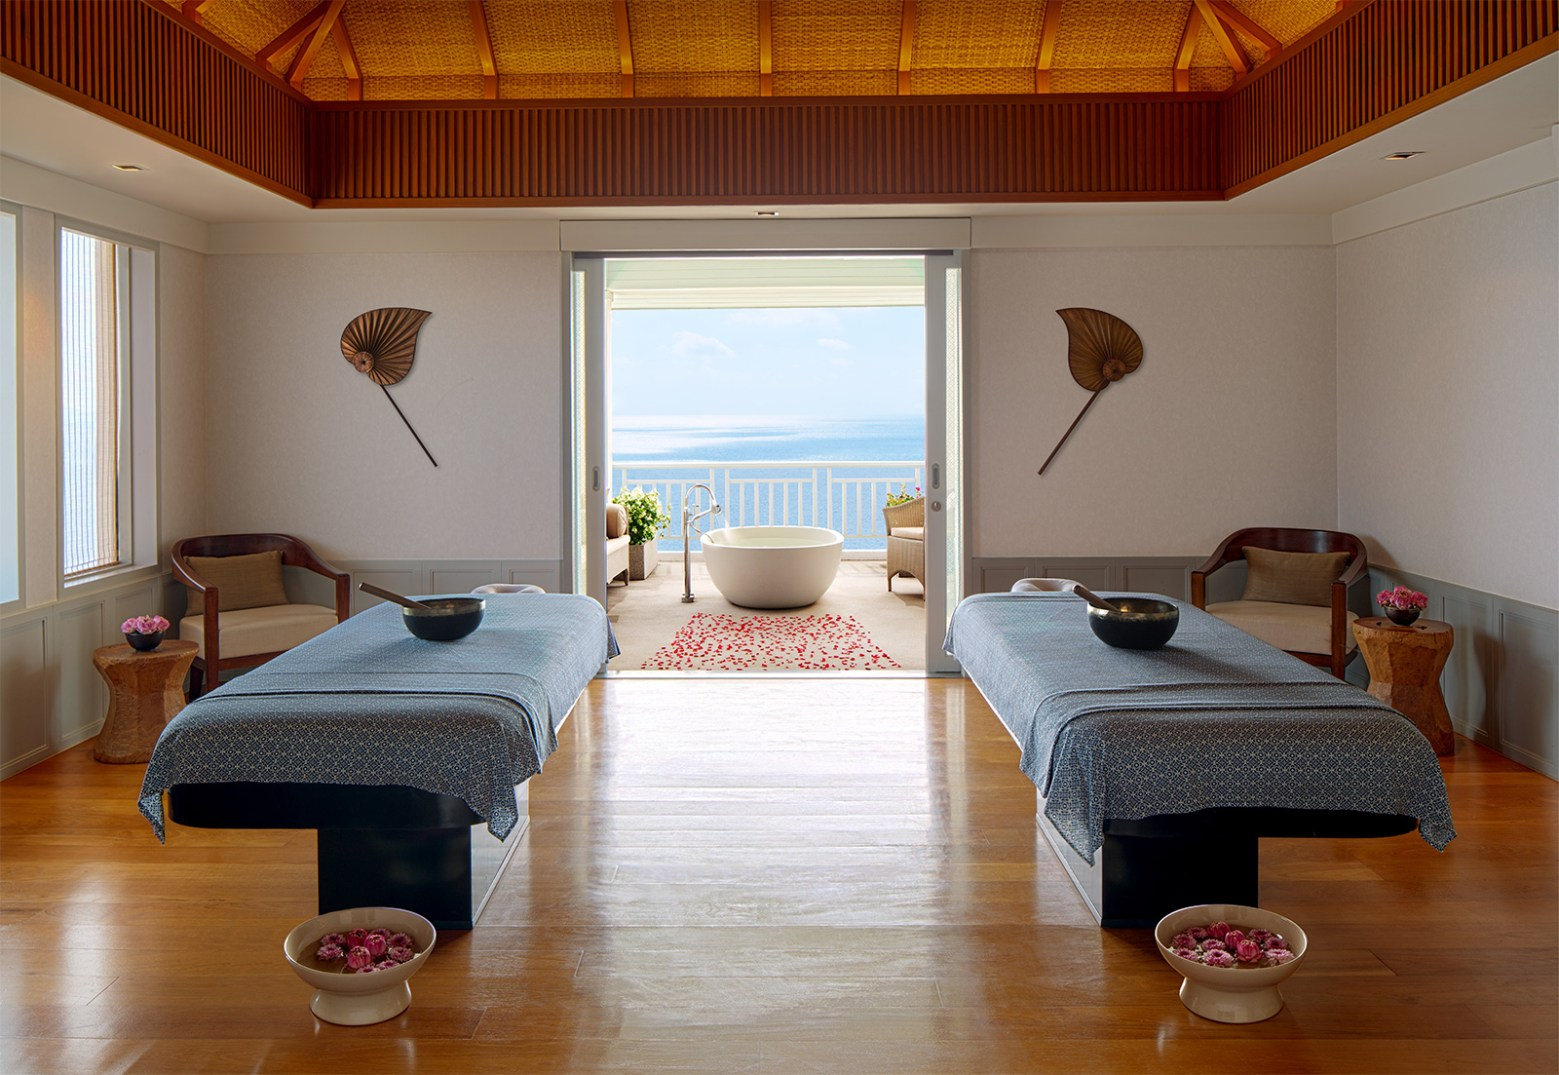 Five Lux Wellness Retreats - Amatara Wellness Resort